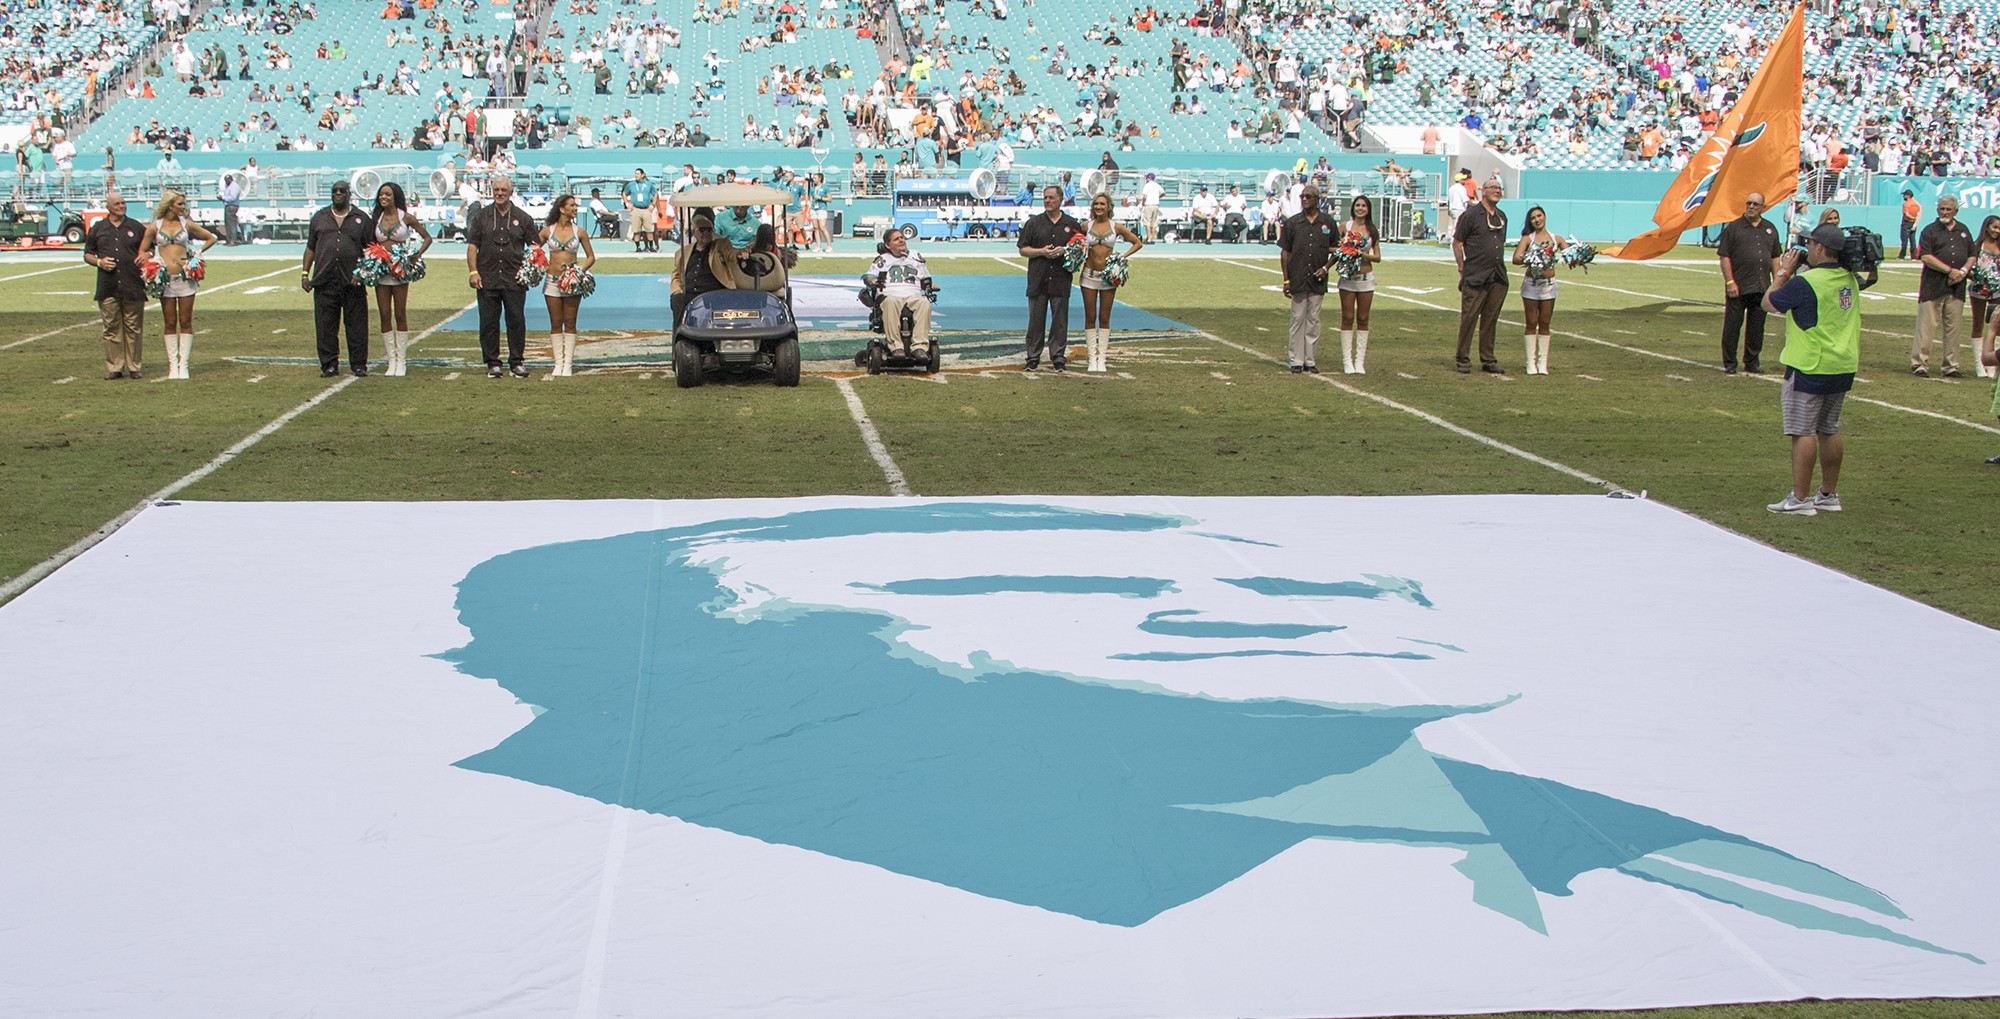 The Perfect 72 Miami Dolphins are celebrated during half time of the New York Jets vs the Miami Dolphins football game on Sunday, Oct. 22, 2017, in Miami Gardens, Fla. (Donald Edgar/El Latino Digital)